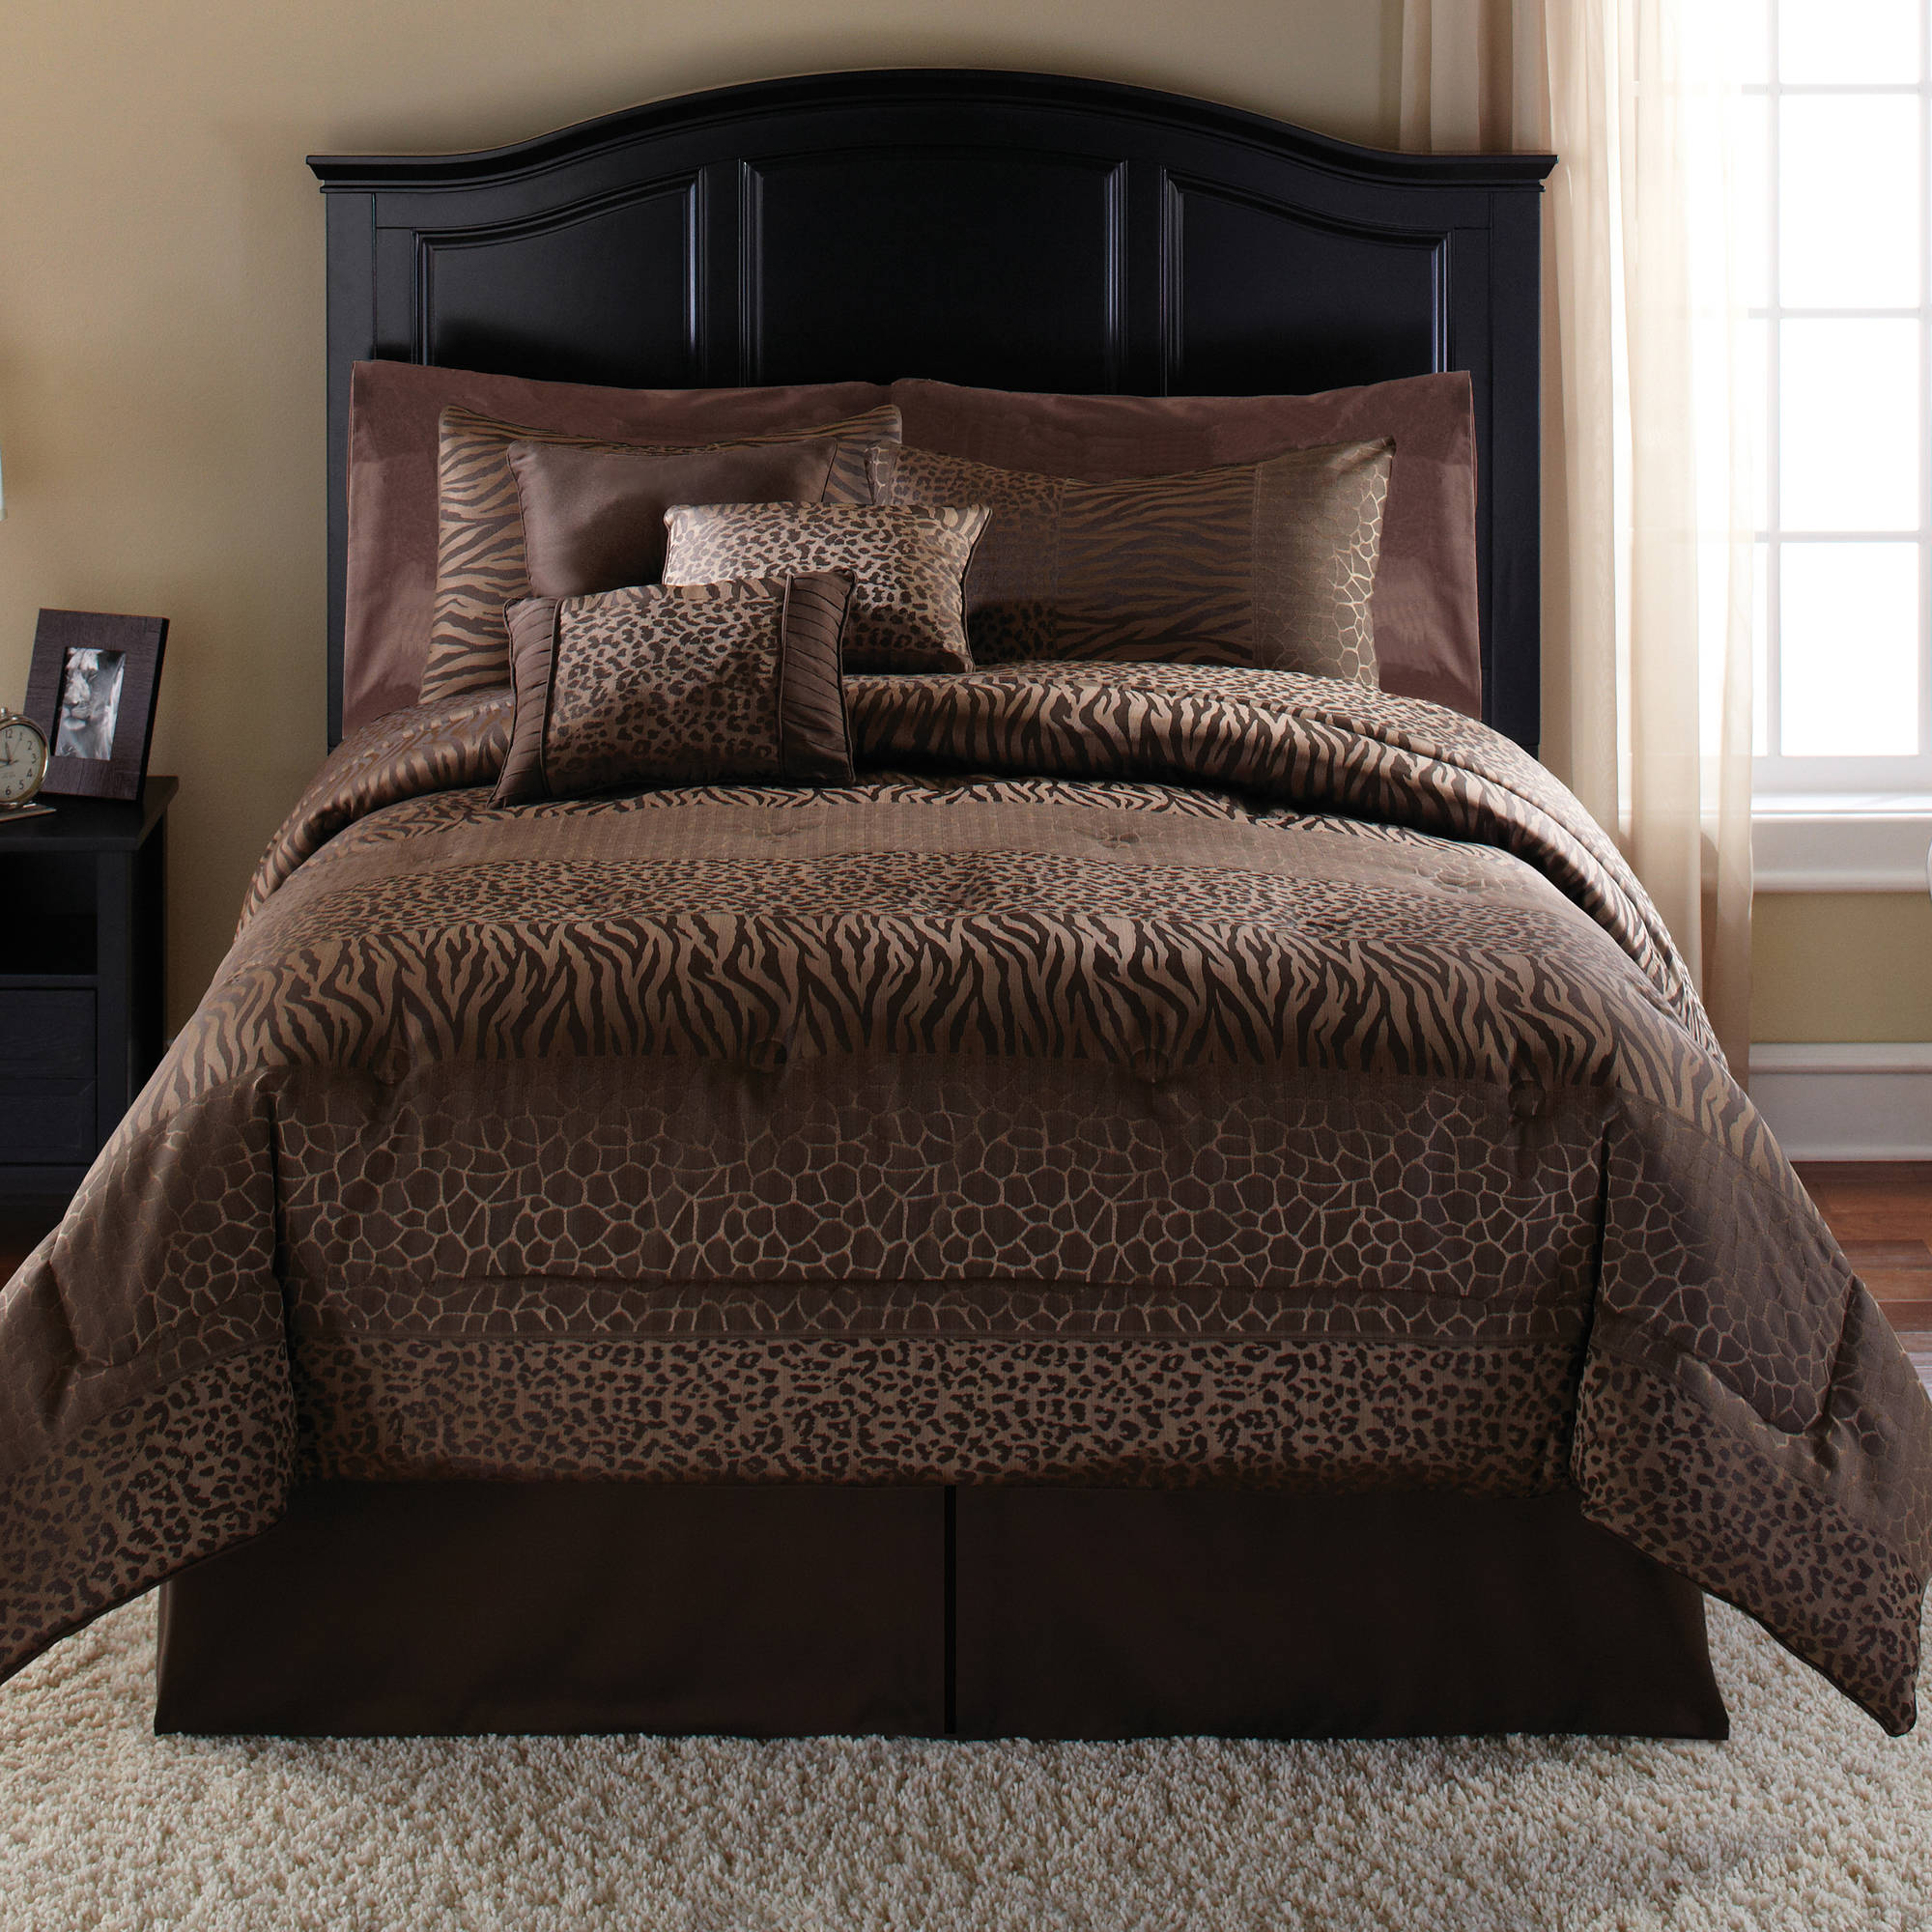 Mainstays Safari 7 Piece Bedding Comforter Set